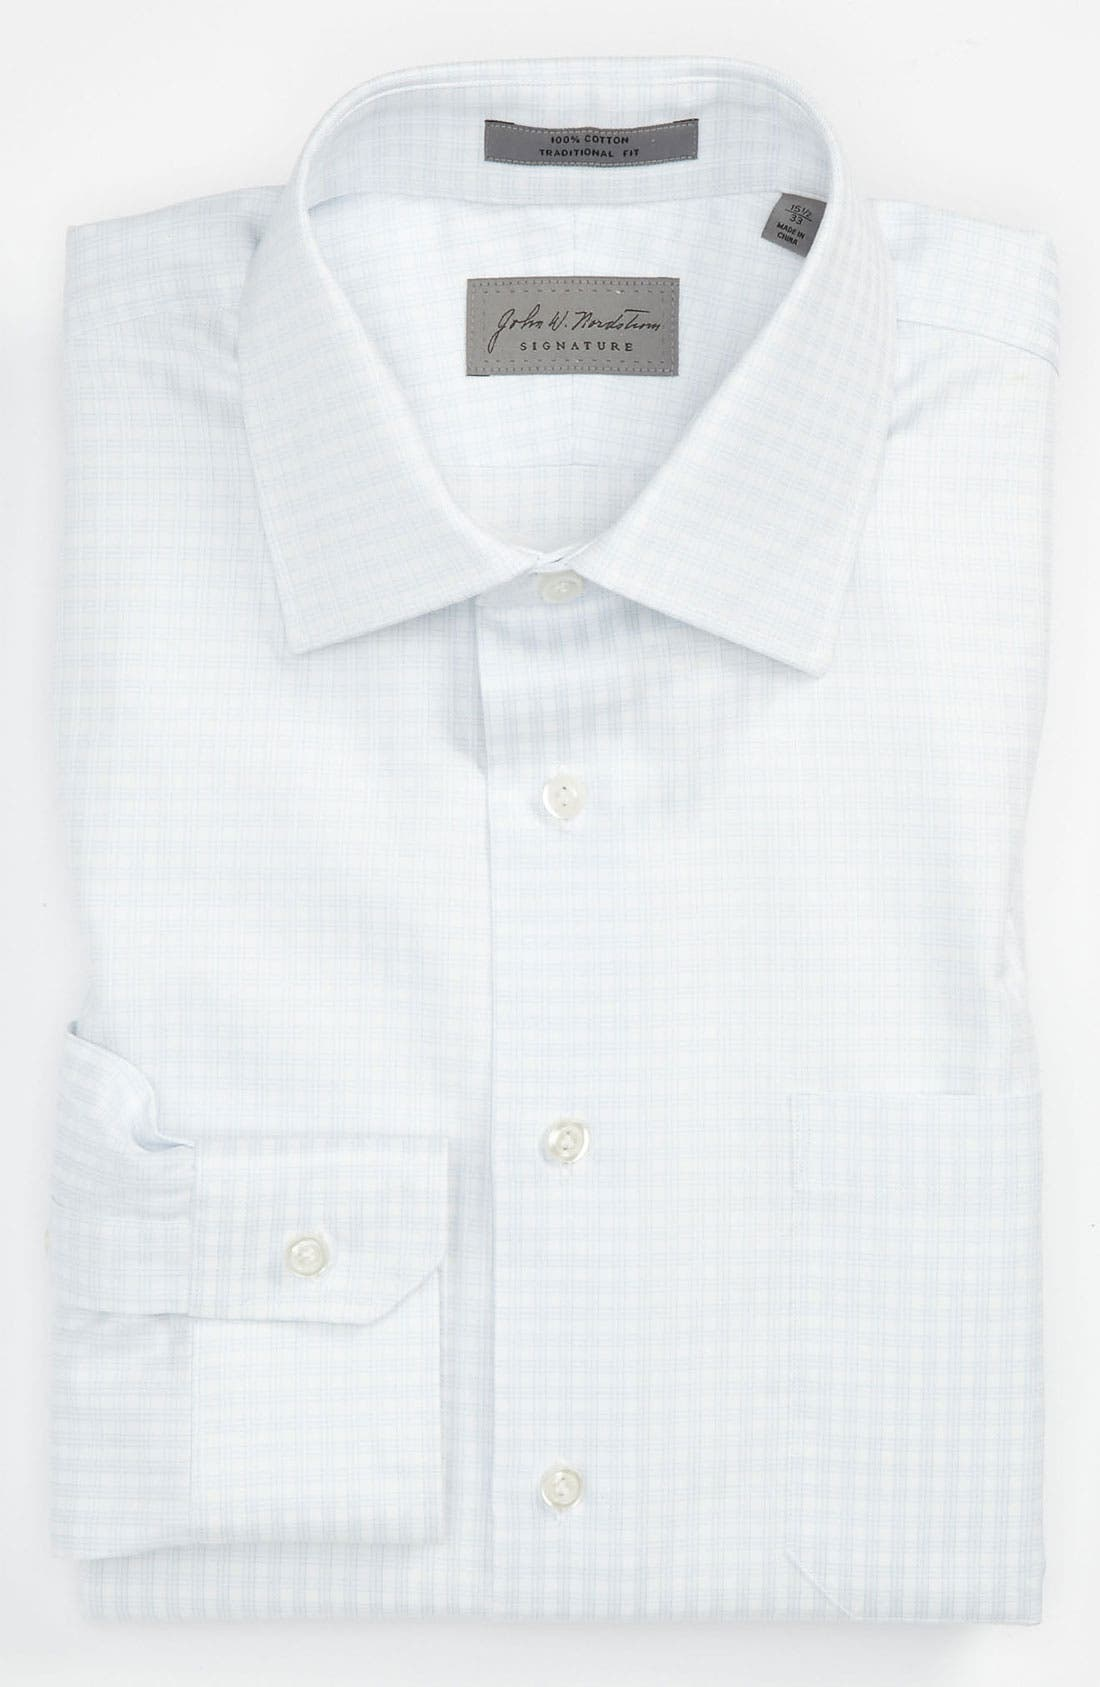 Traditional Fit Dress Shirt,                             Main thumbnail 1, color,                             100